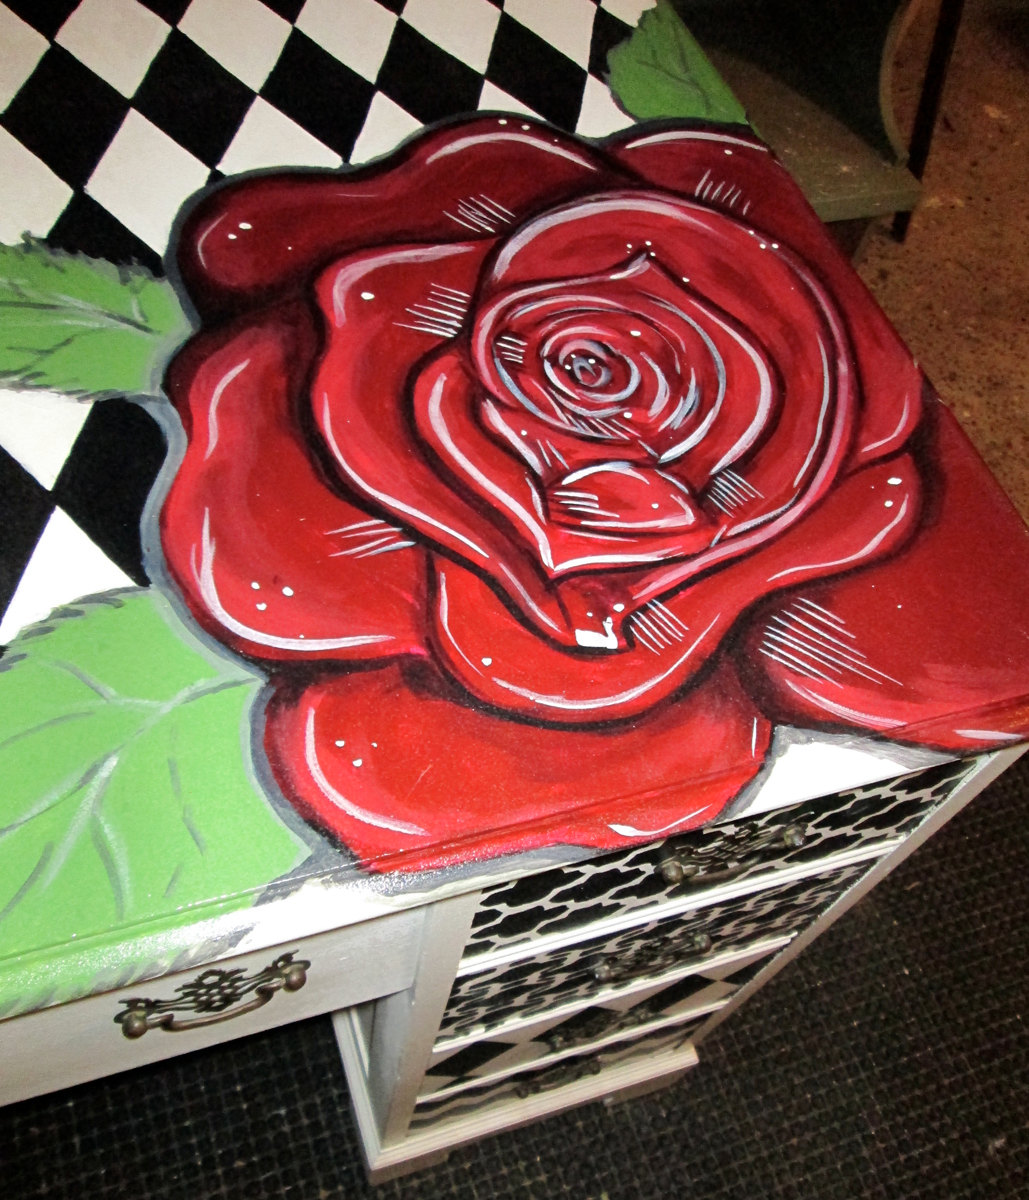 Drawn red rose one Hand hand desk painted drawn